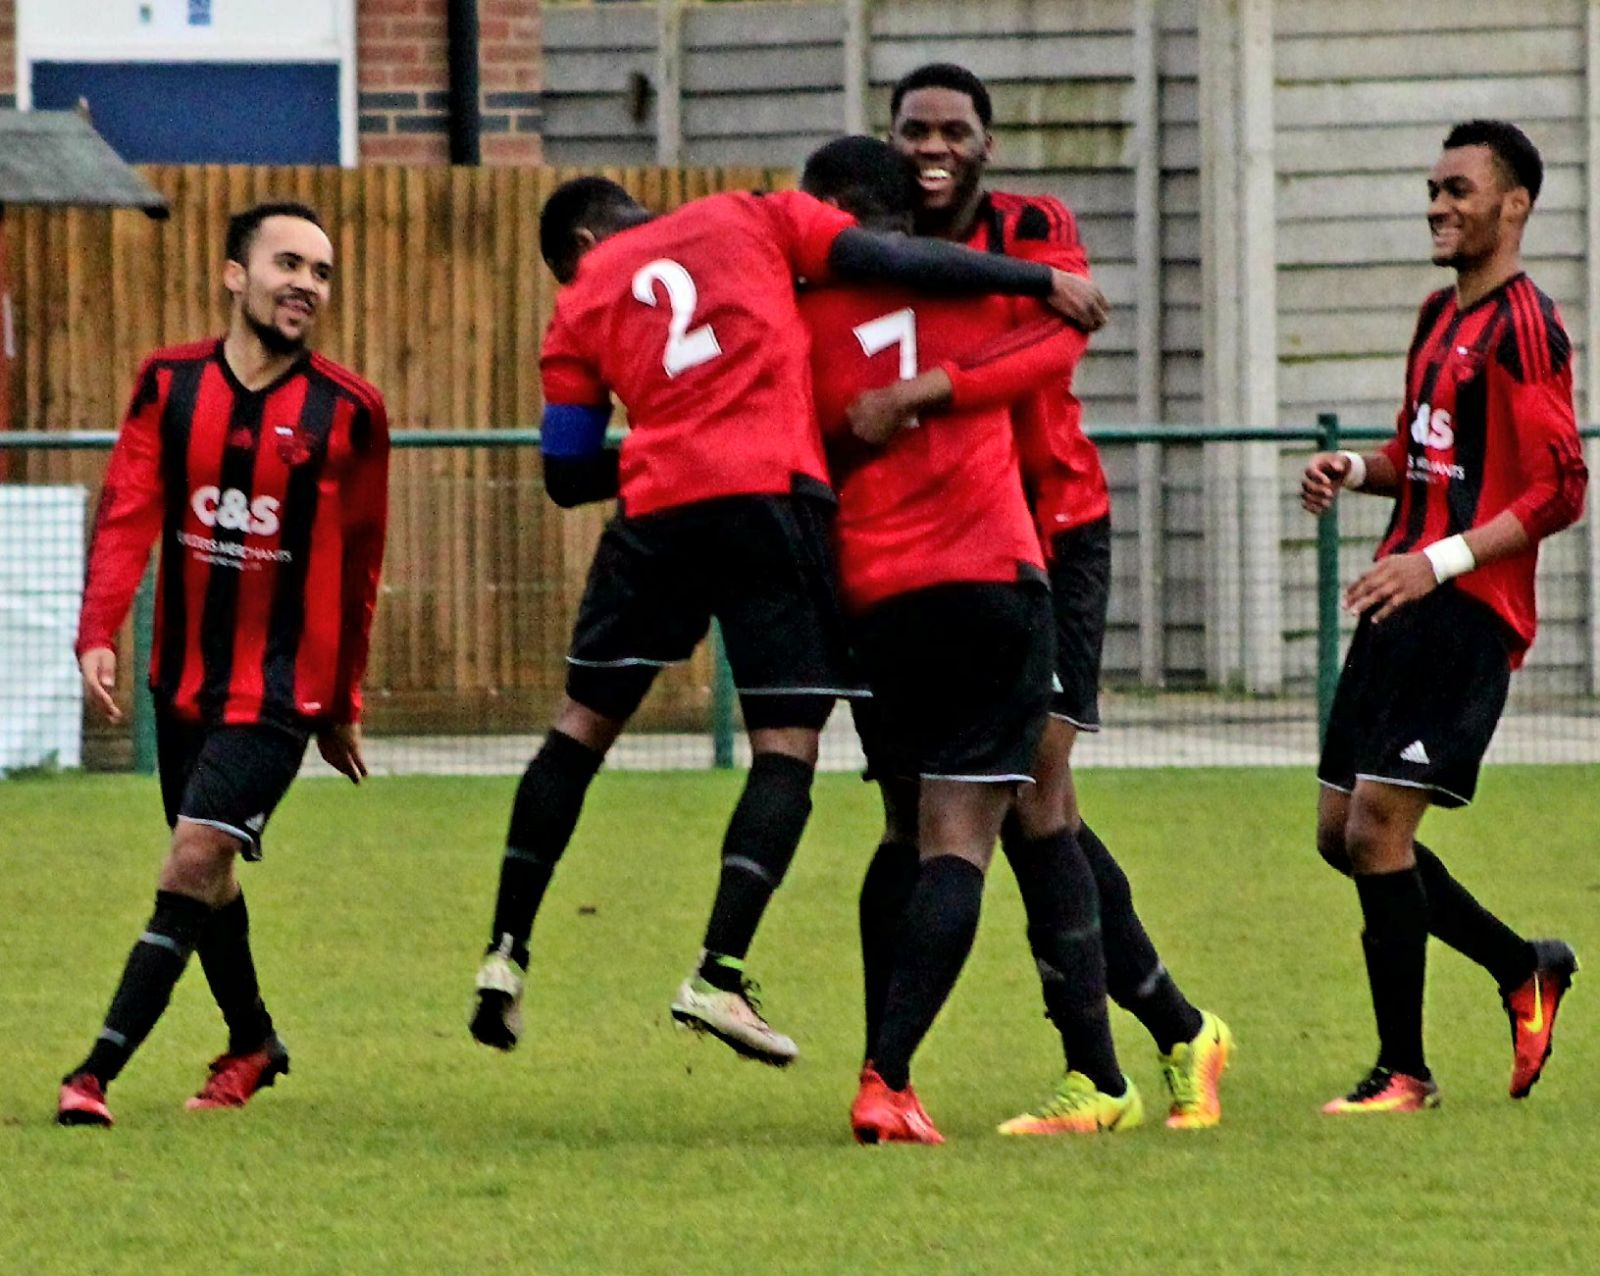 Enfield celebrate Sivi Bao's (number 7) spectacular goal in Saturday's emphatic 6-1 victory at St Neots Town Reserves.